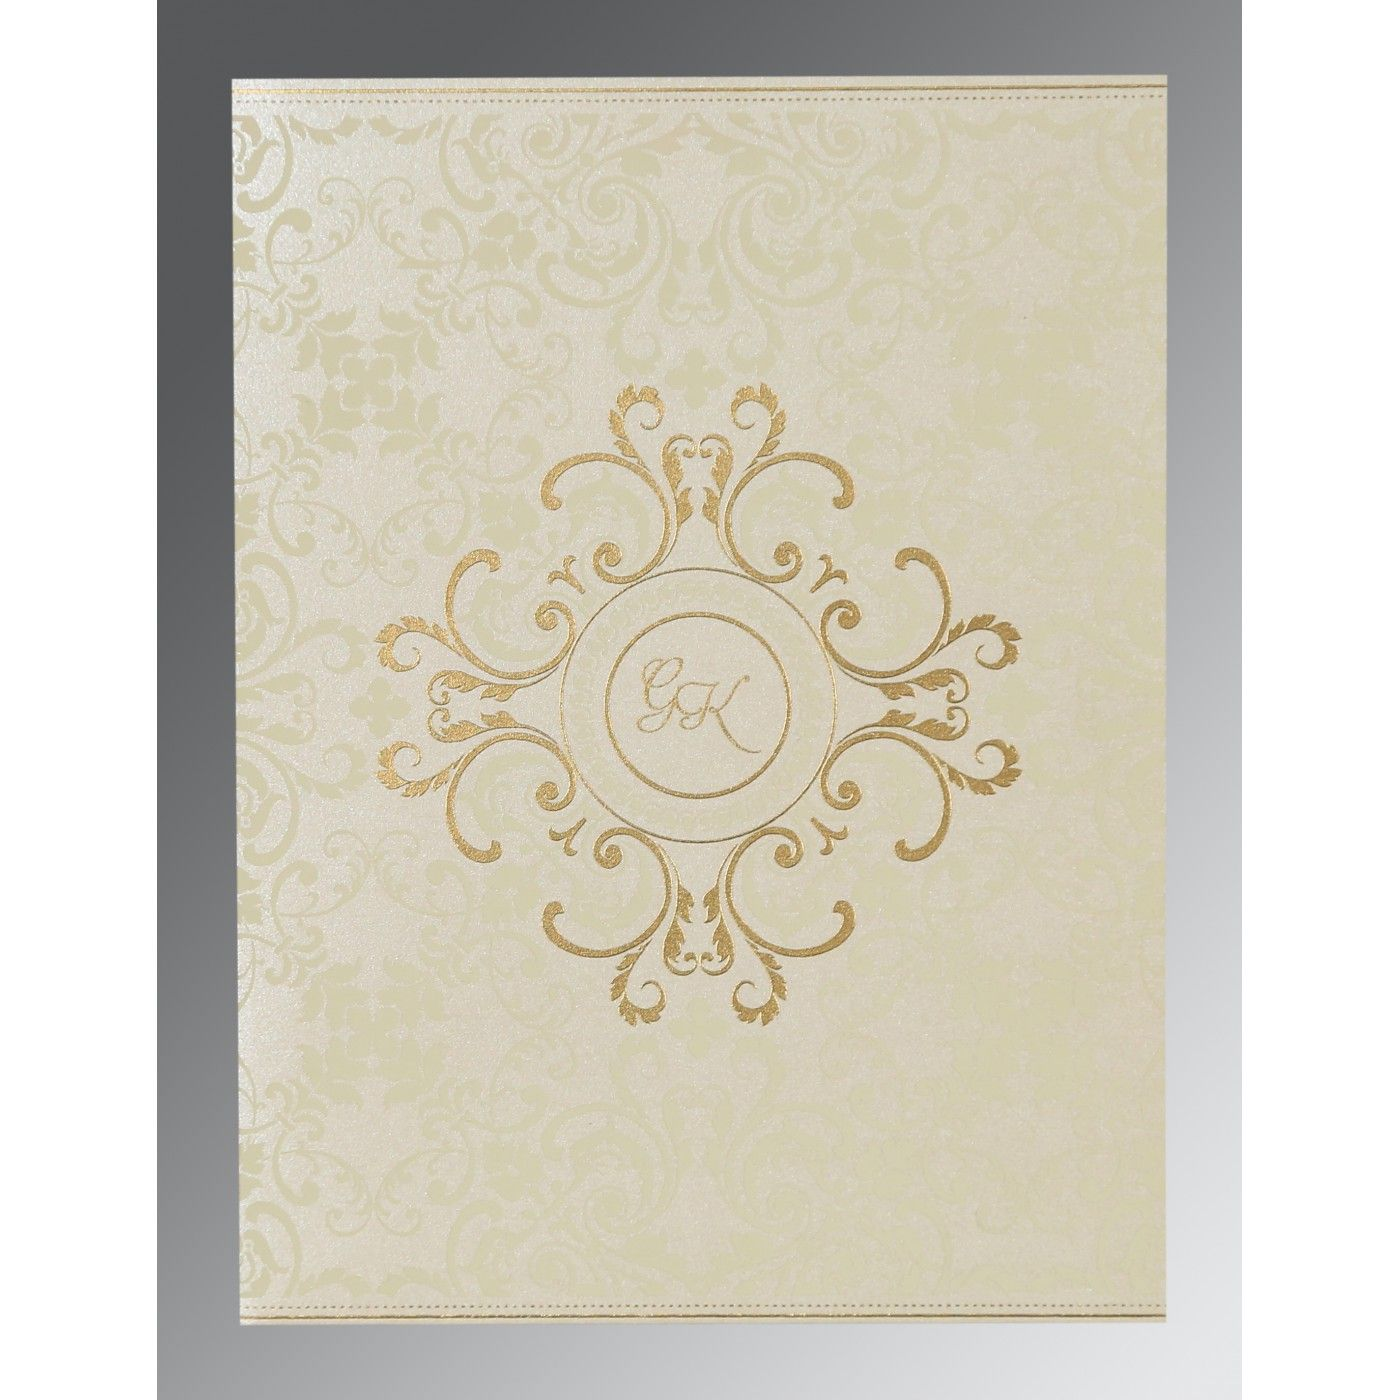 OFF-WHITE SHIMMERY SCREEN PRINTED WEDDING CARD : CIN-8244B - IndianWeddingCards